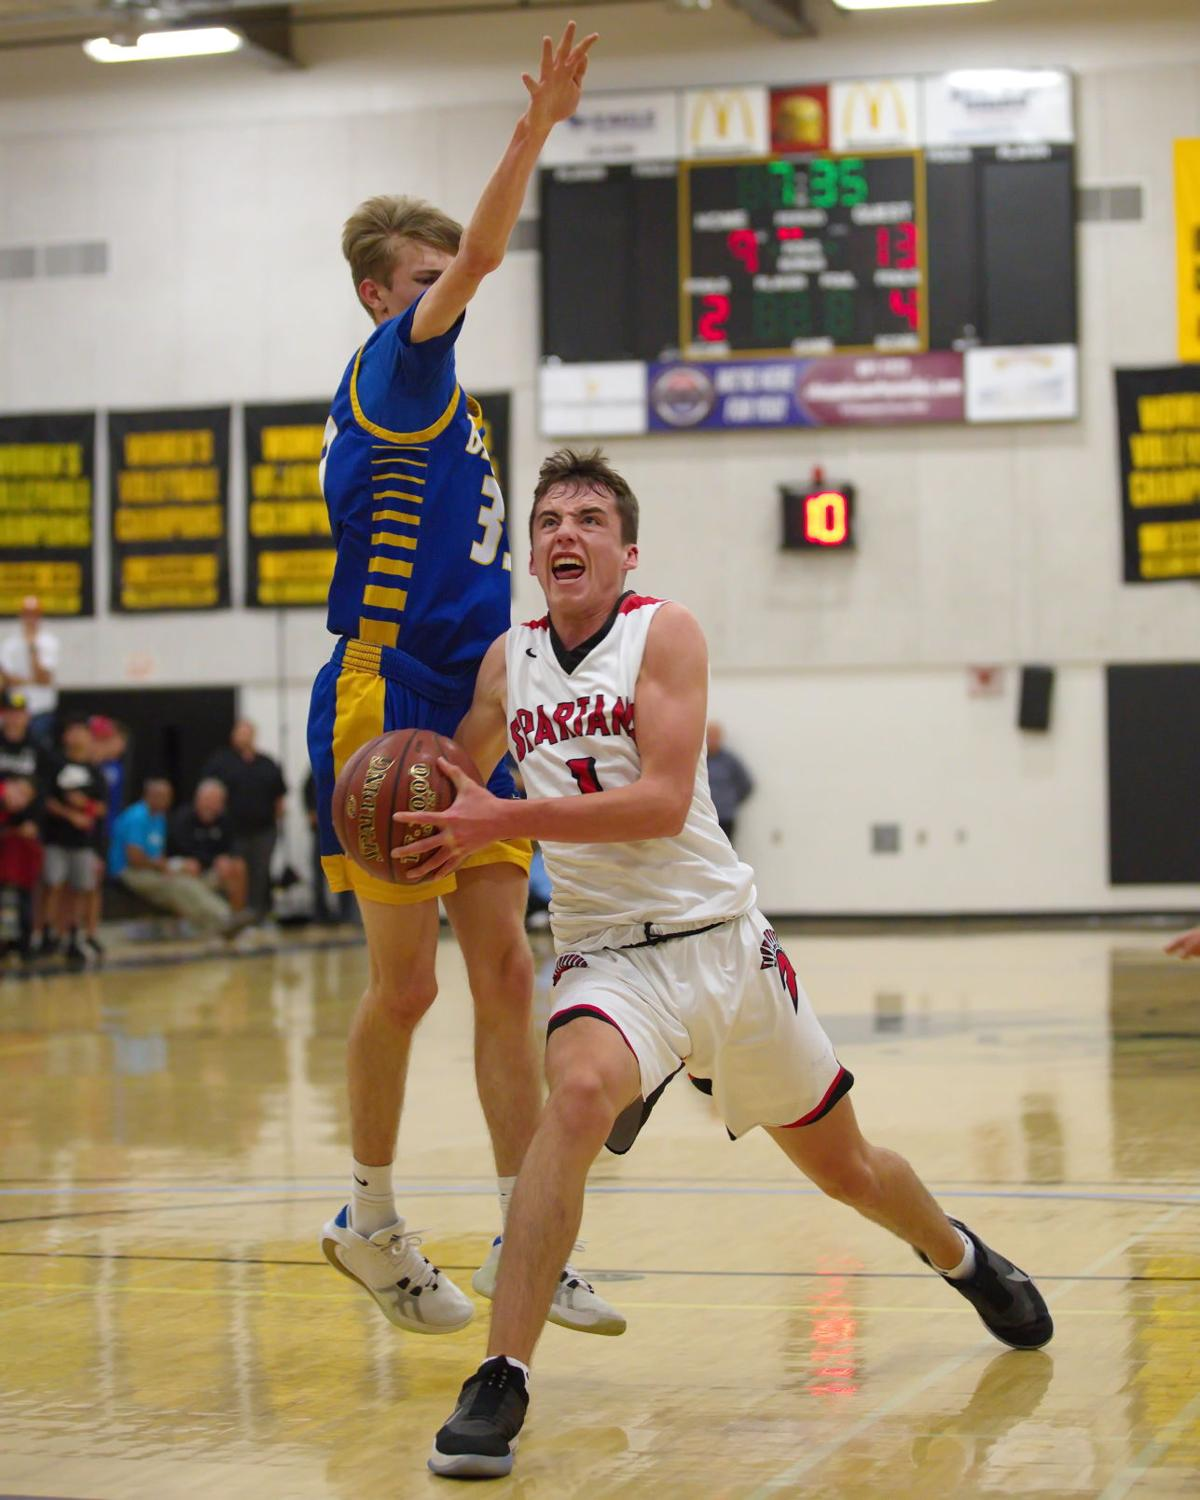 Kent Earhart (1) of East Nicolaus drives past the defense of Mt. Shasta's Avery May (33) in the D5 title game played in Butte Valley Friday night (Photo by Eddie Saltzman)